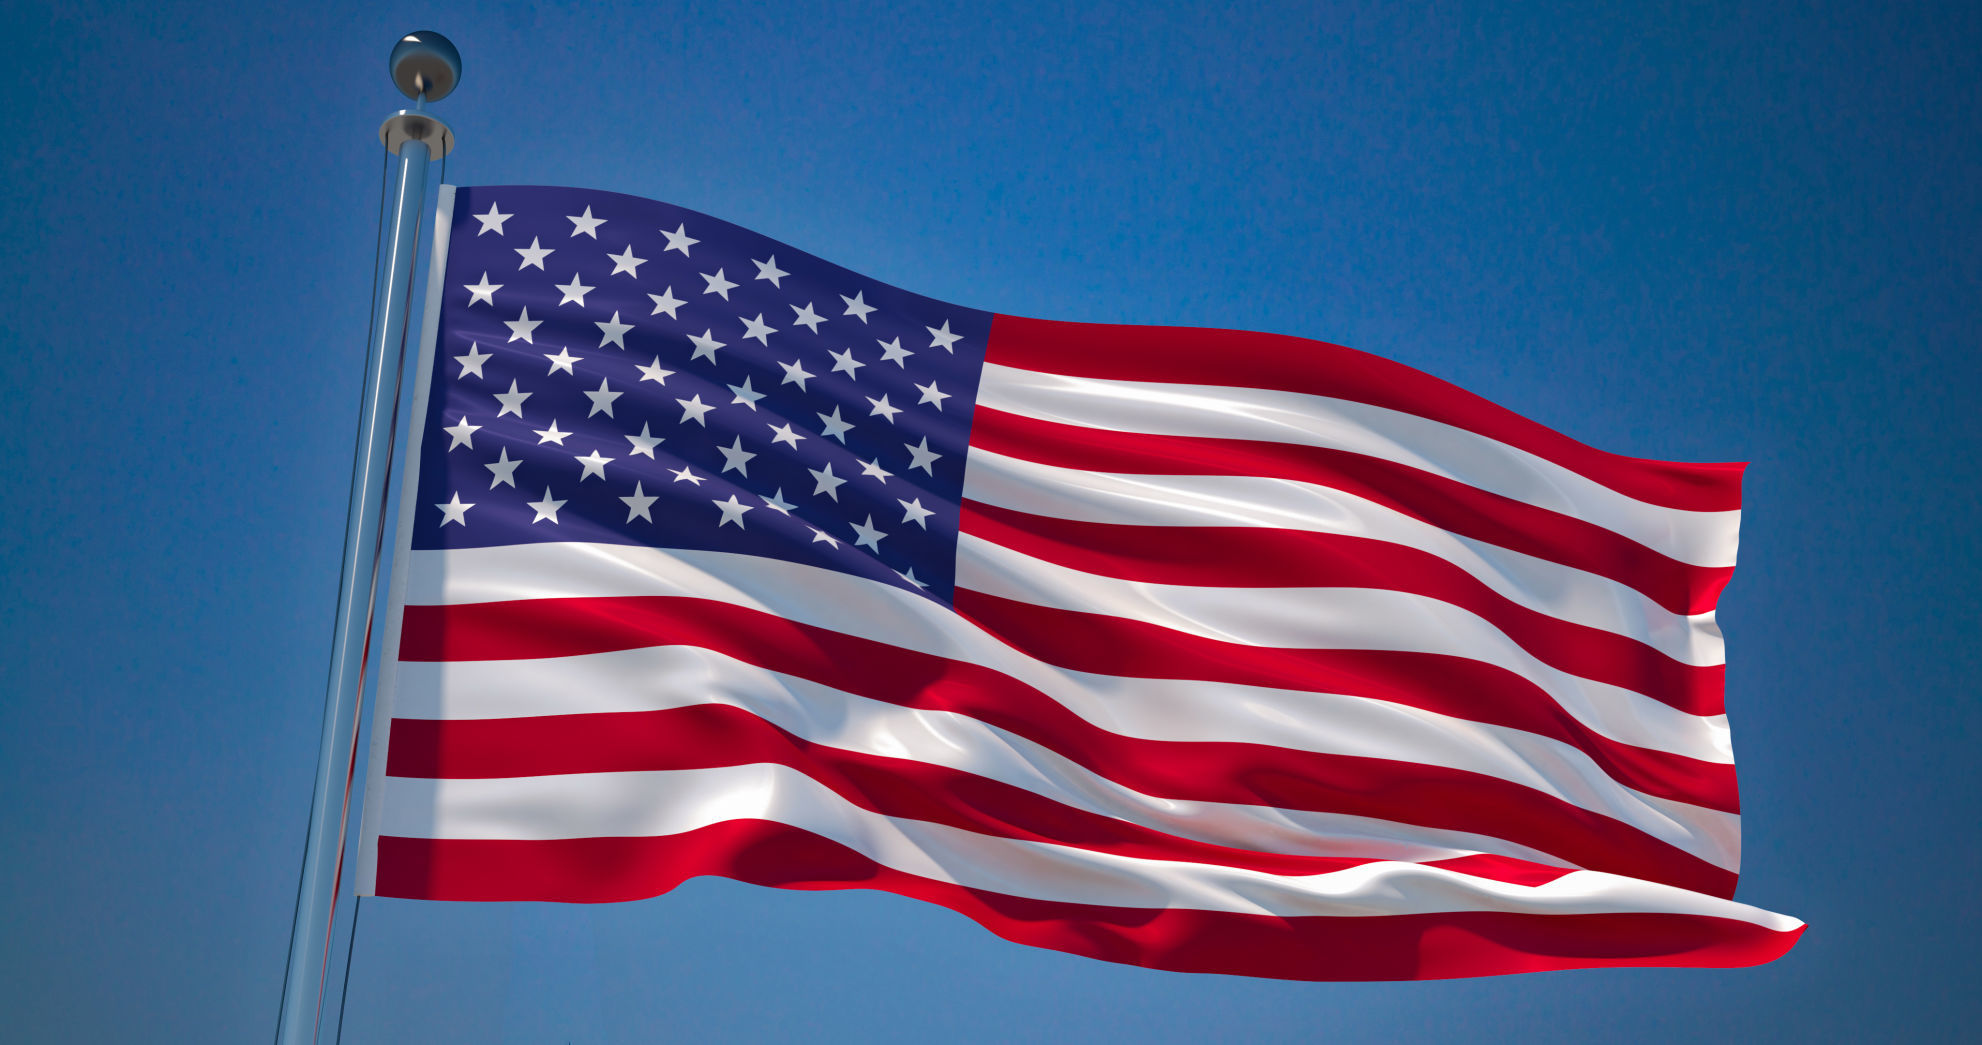 DaShan 14x10ft American Flag Backdrop Stars Stripes Flag Veterans Day Photography Background The Old Glory Soldier Military Peace Campaigner Backdrop Veterans Day Adults Portrait Photo Props